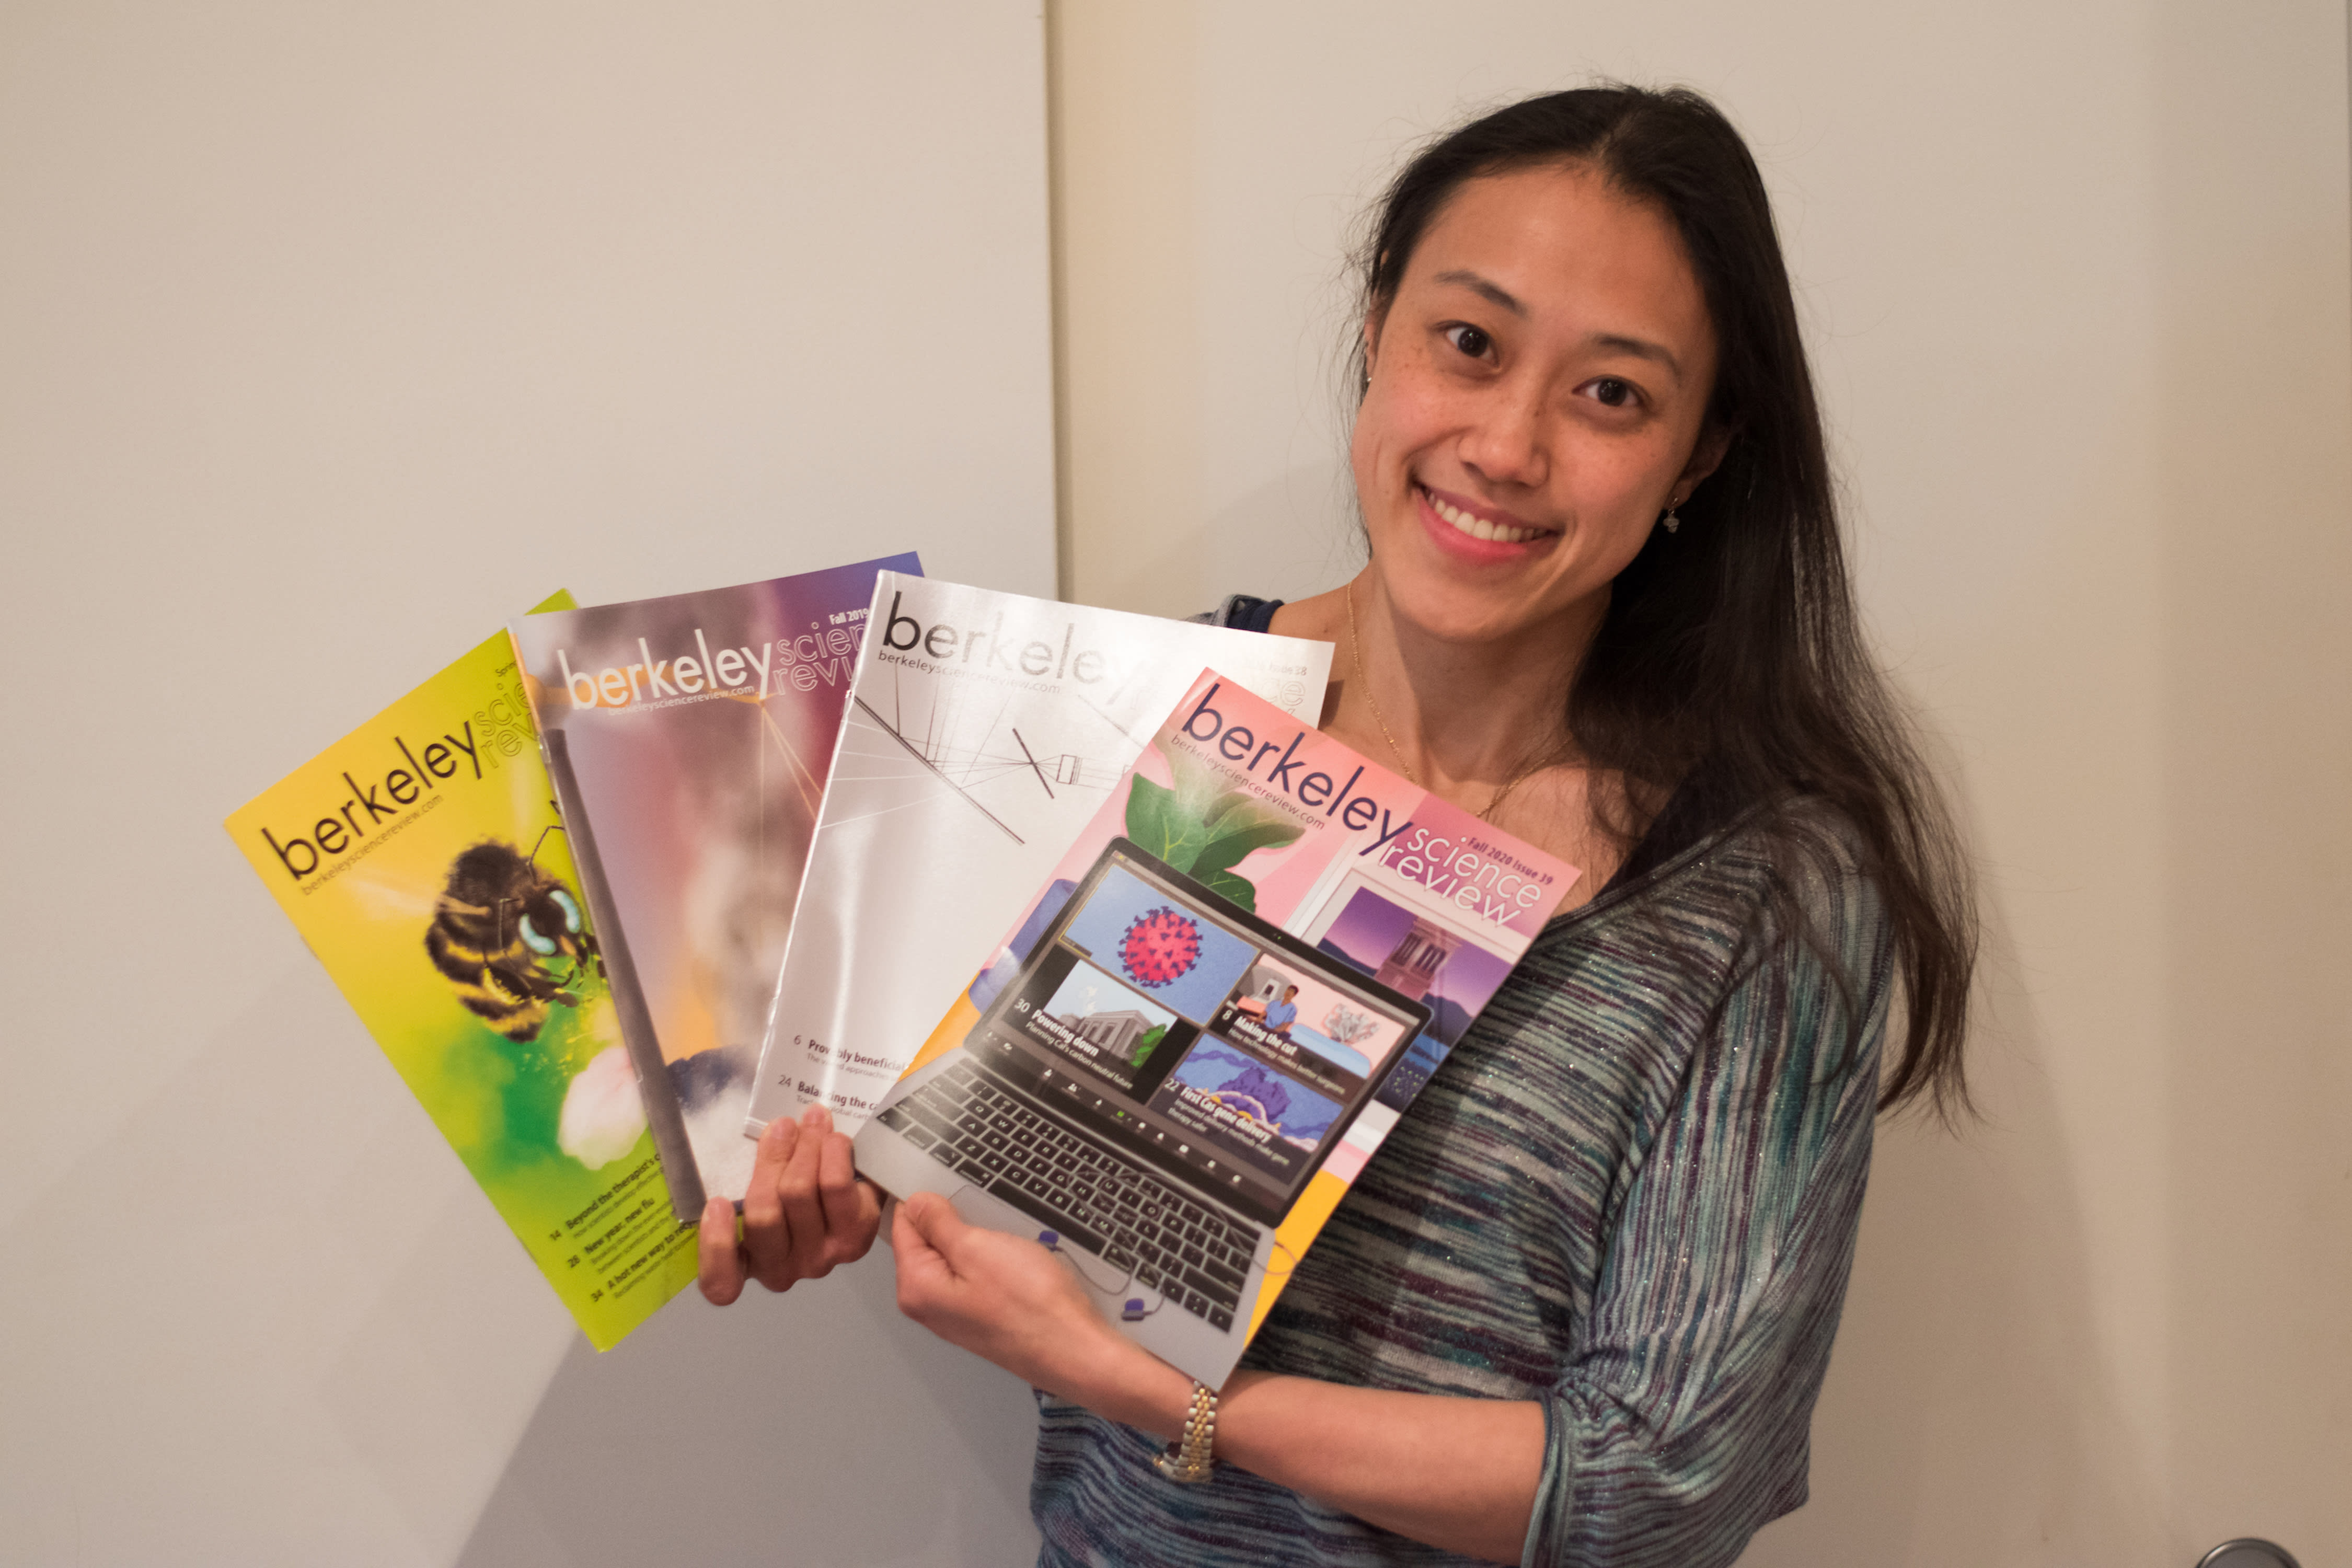 Blog editor in chief Maiko holding up BSR magazines